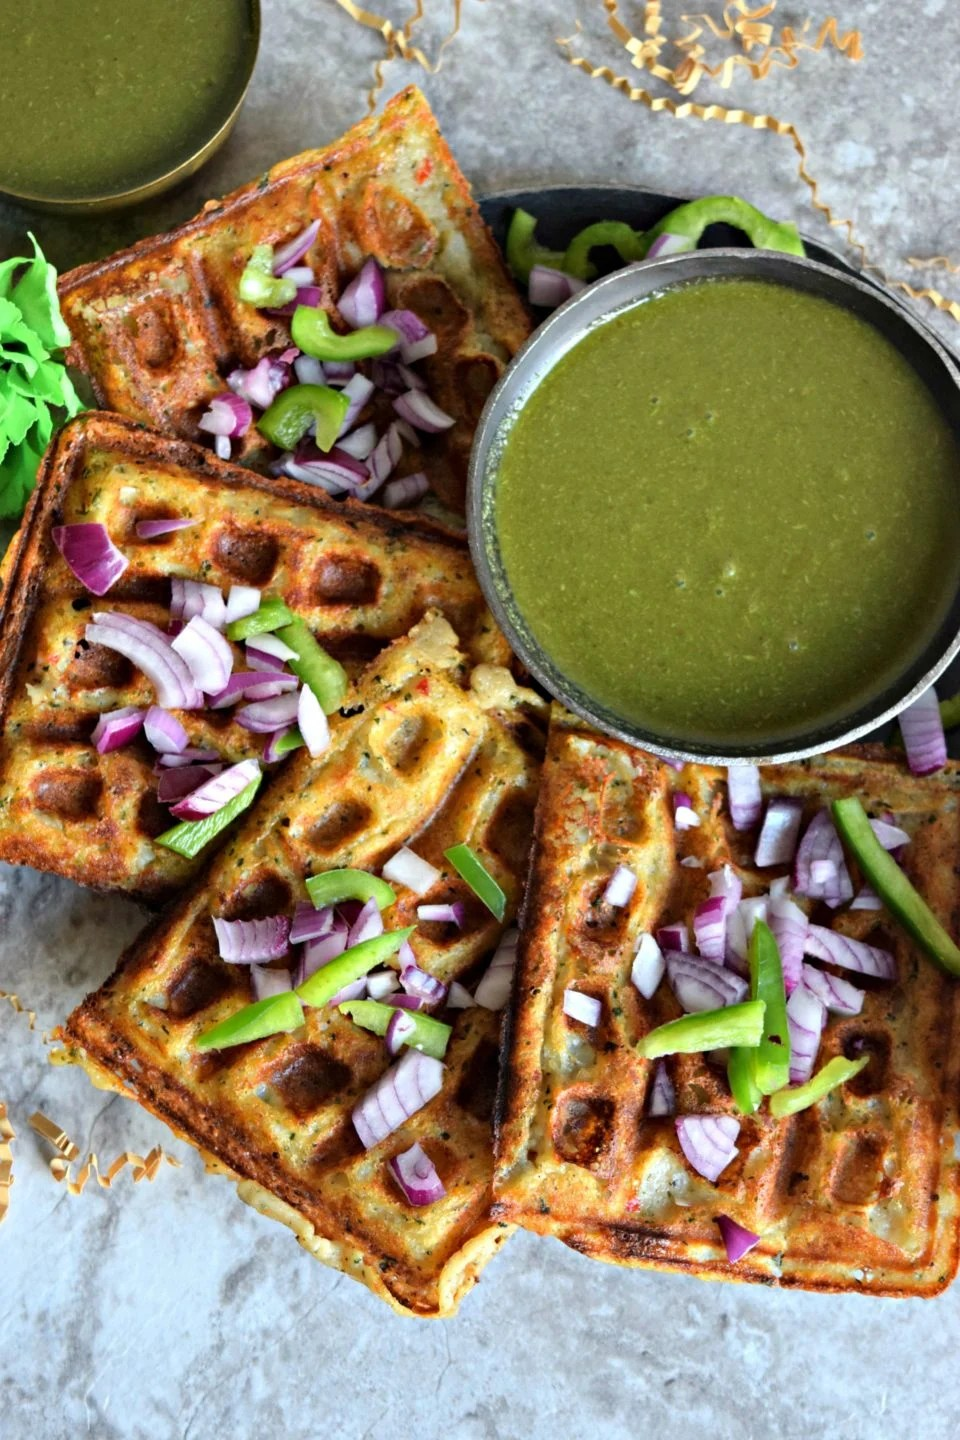 Mashed Potato Hummus Waffles placed one after the other on a round plate with a bowl of chutney next to it